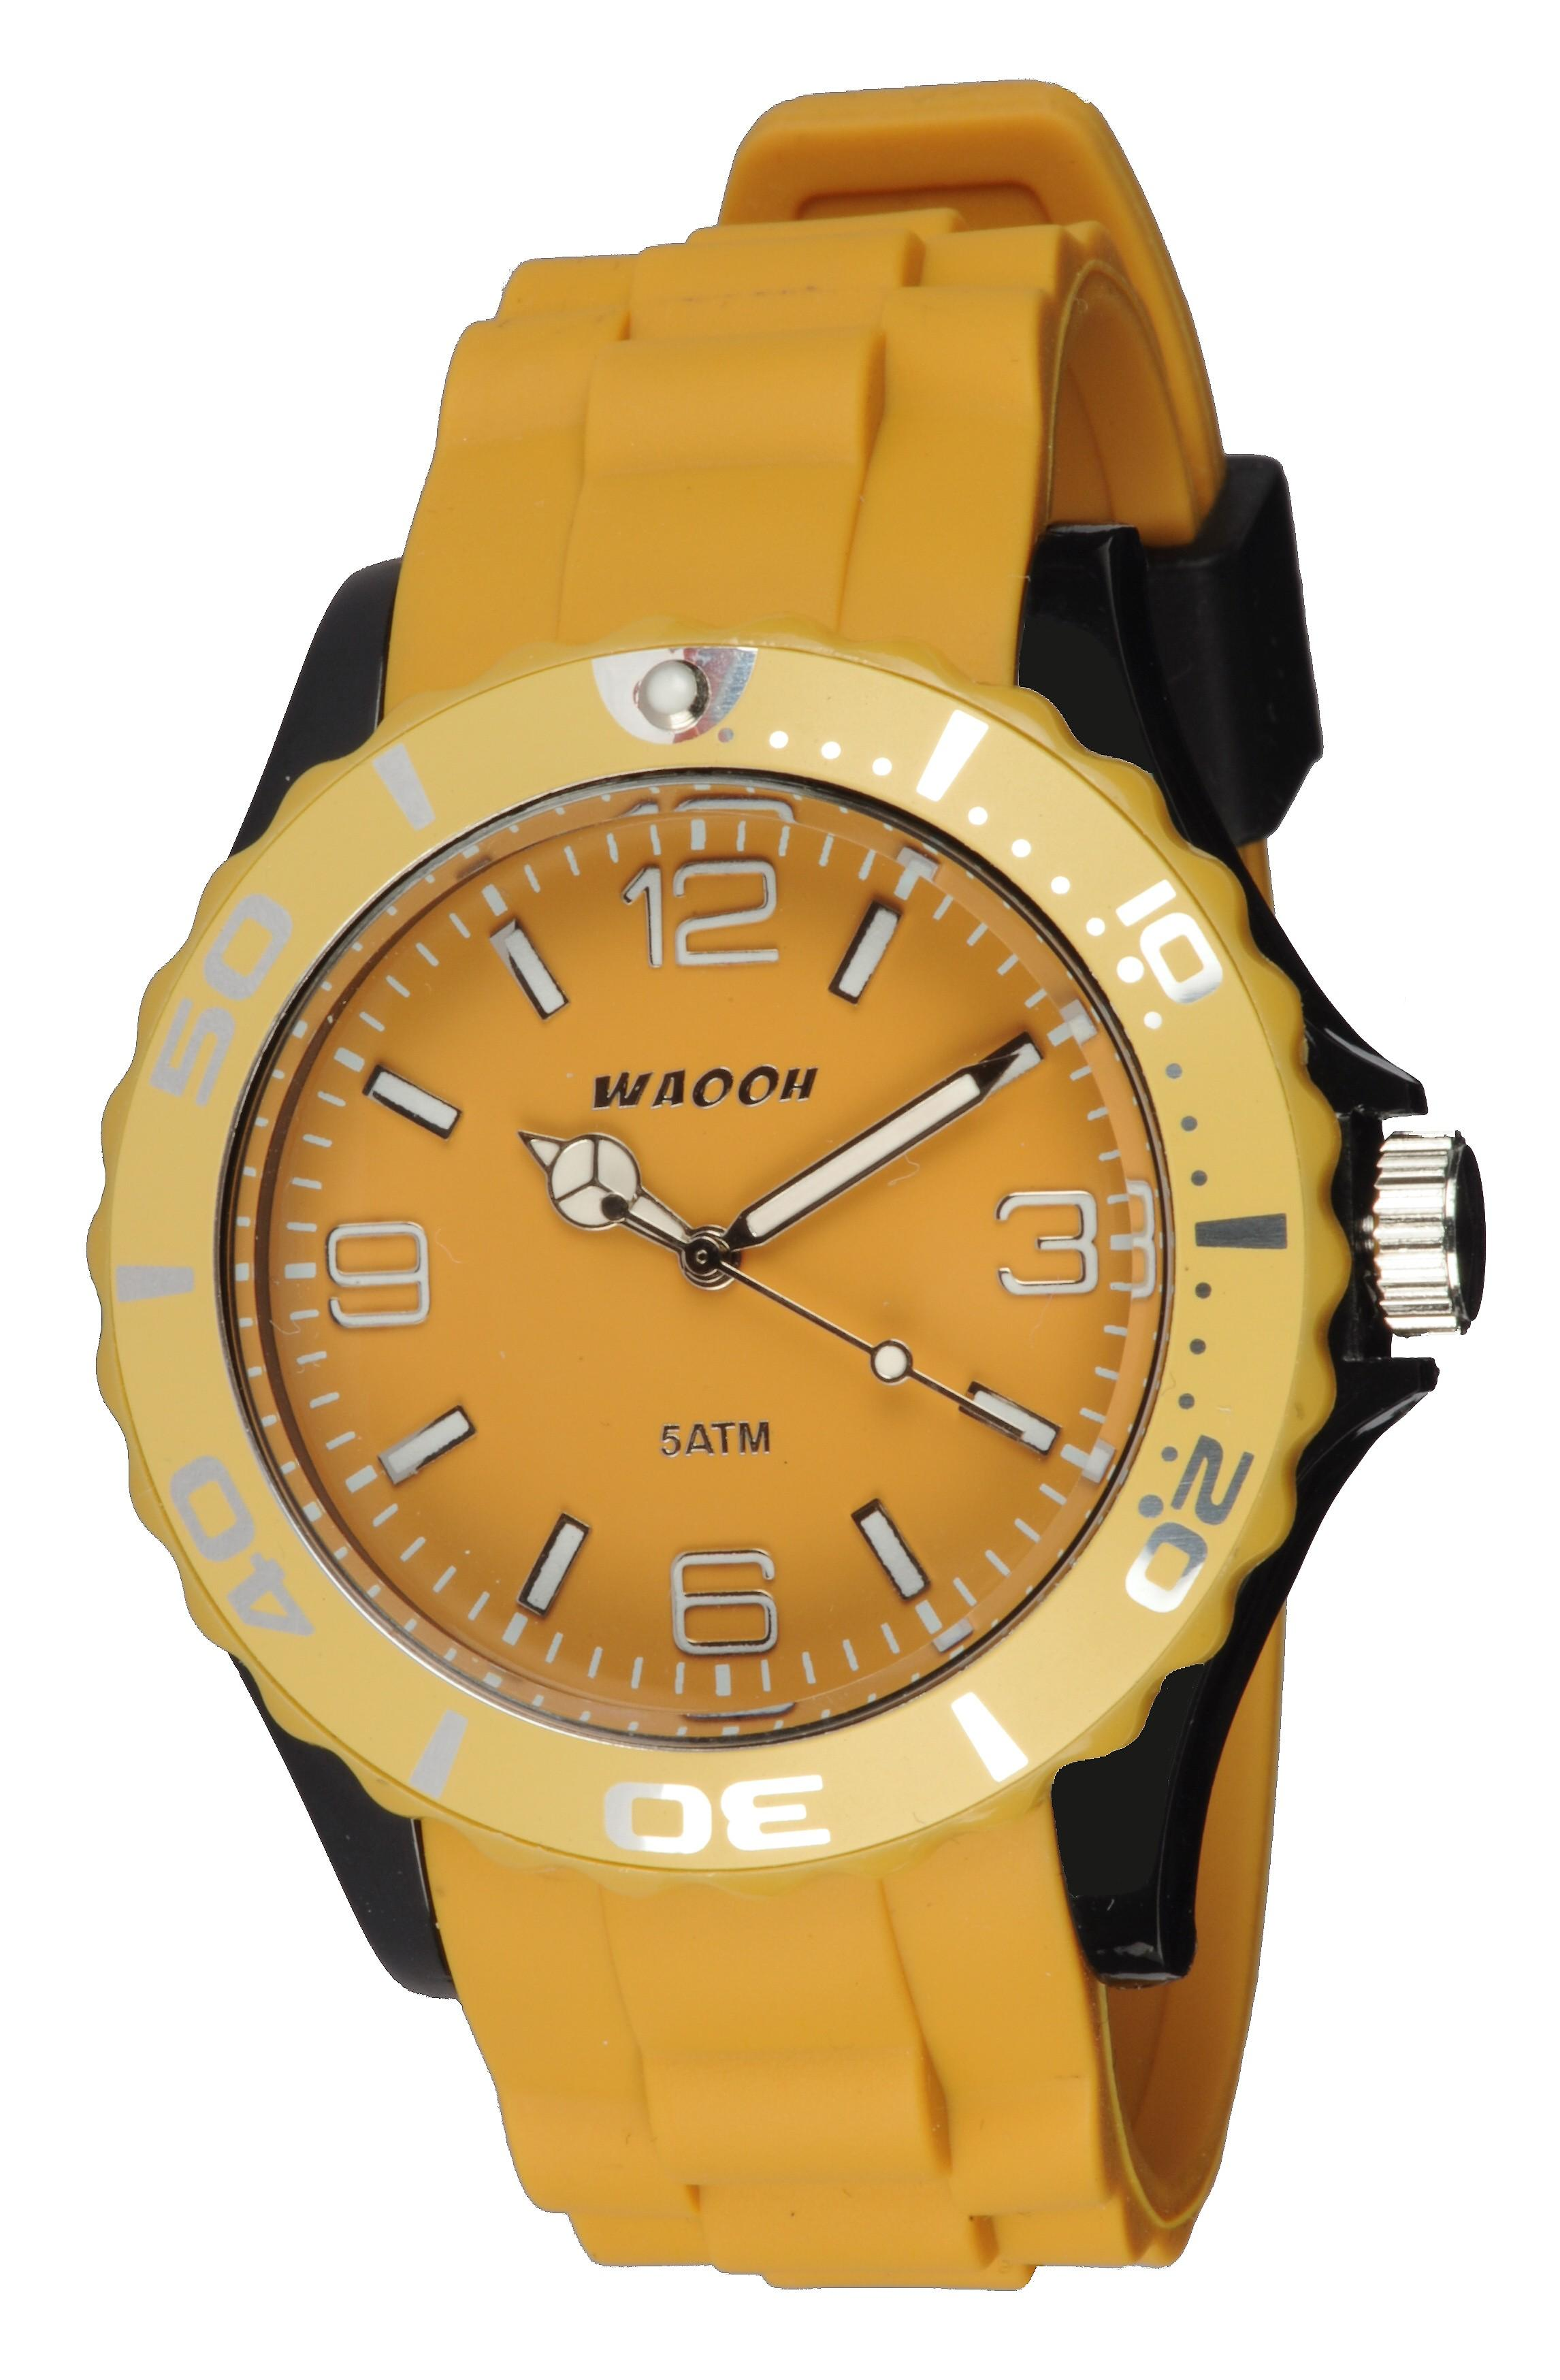 Waooh - Montre MC42 Bicolore & jaune moutarde